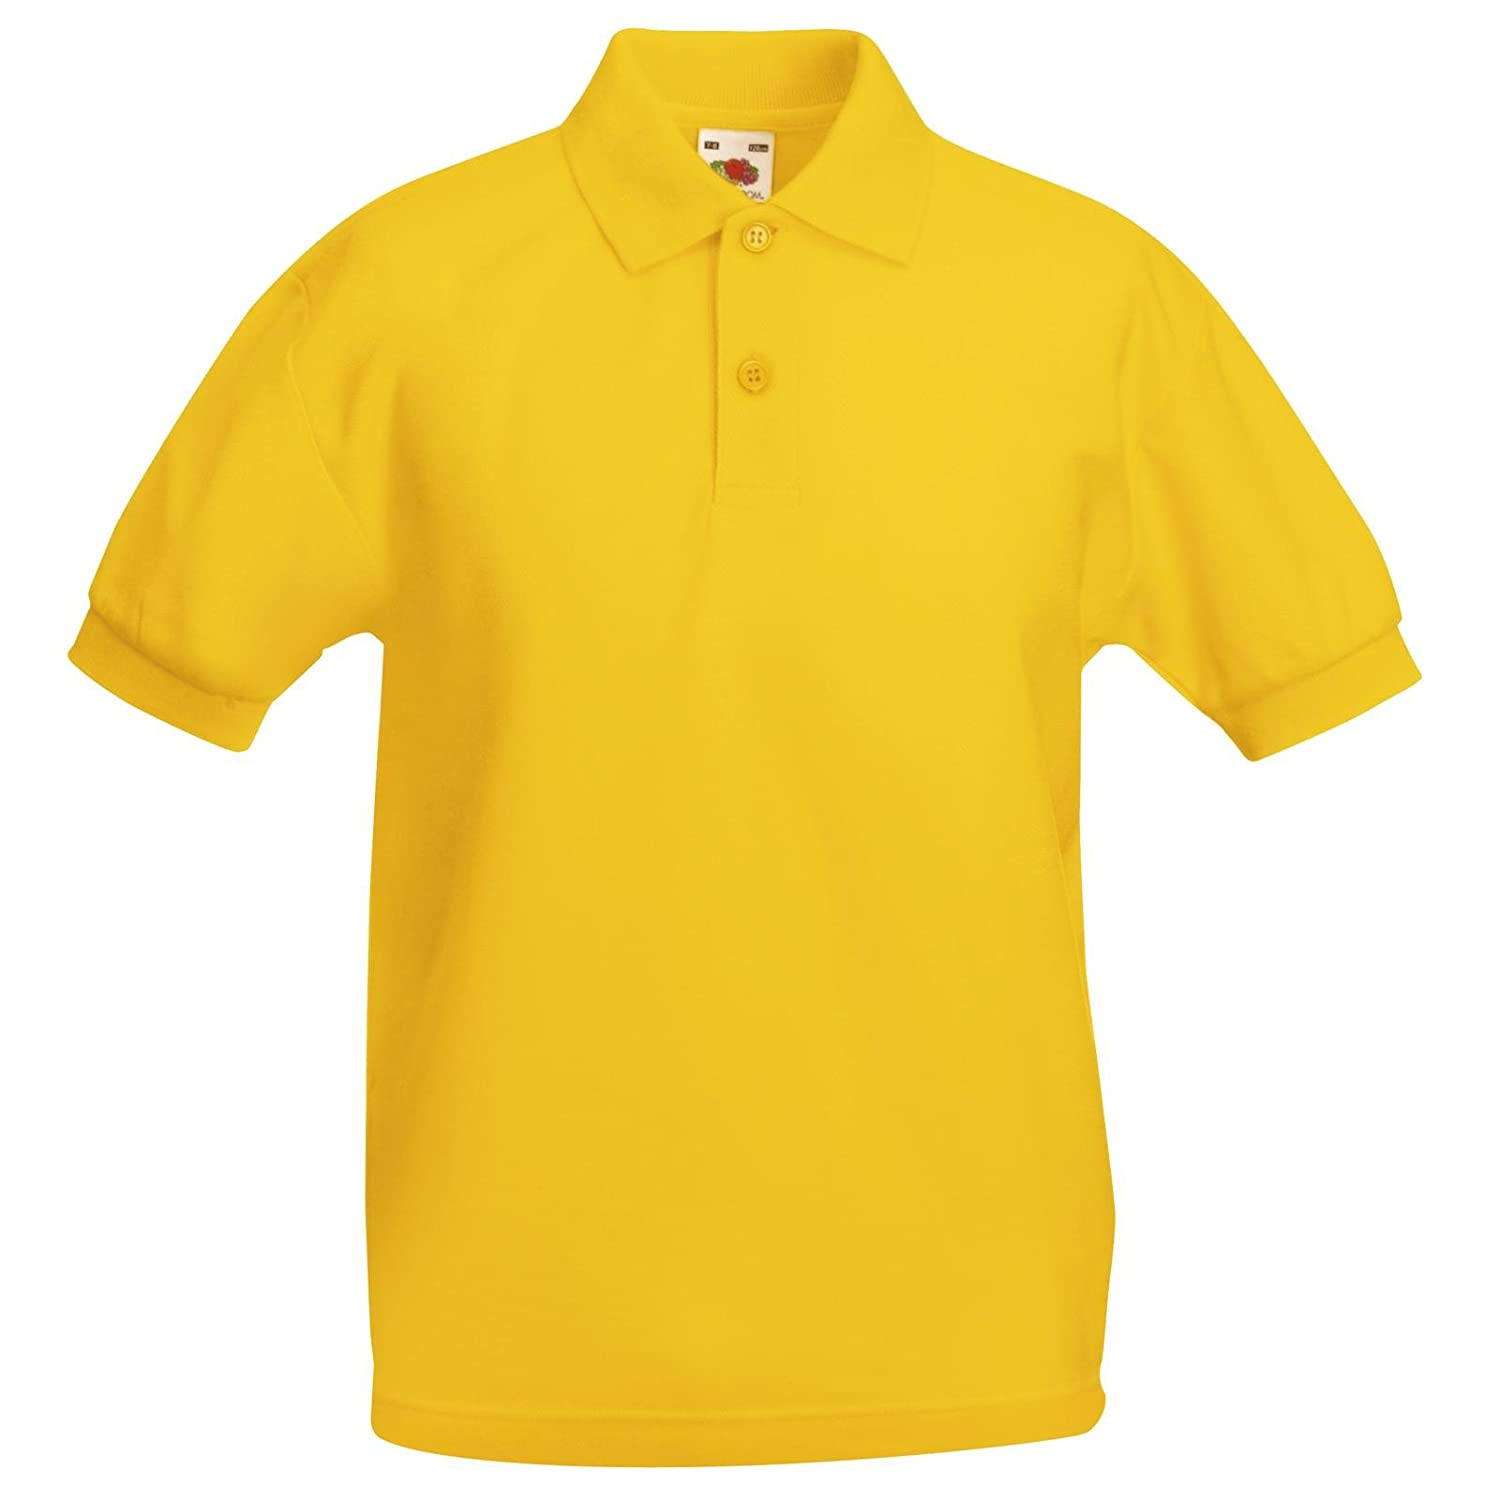 Fruit of the Loom New Childrens Kids Polycotton Polo Shirt